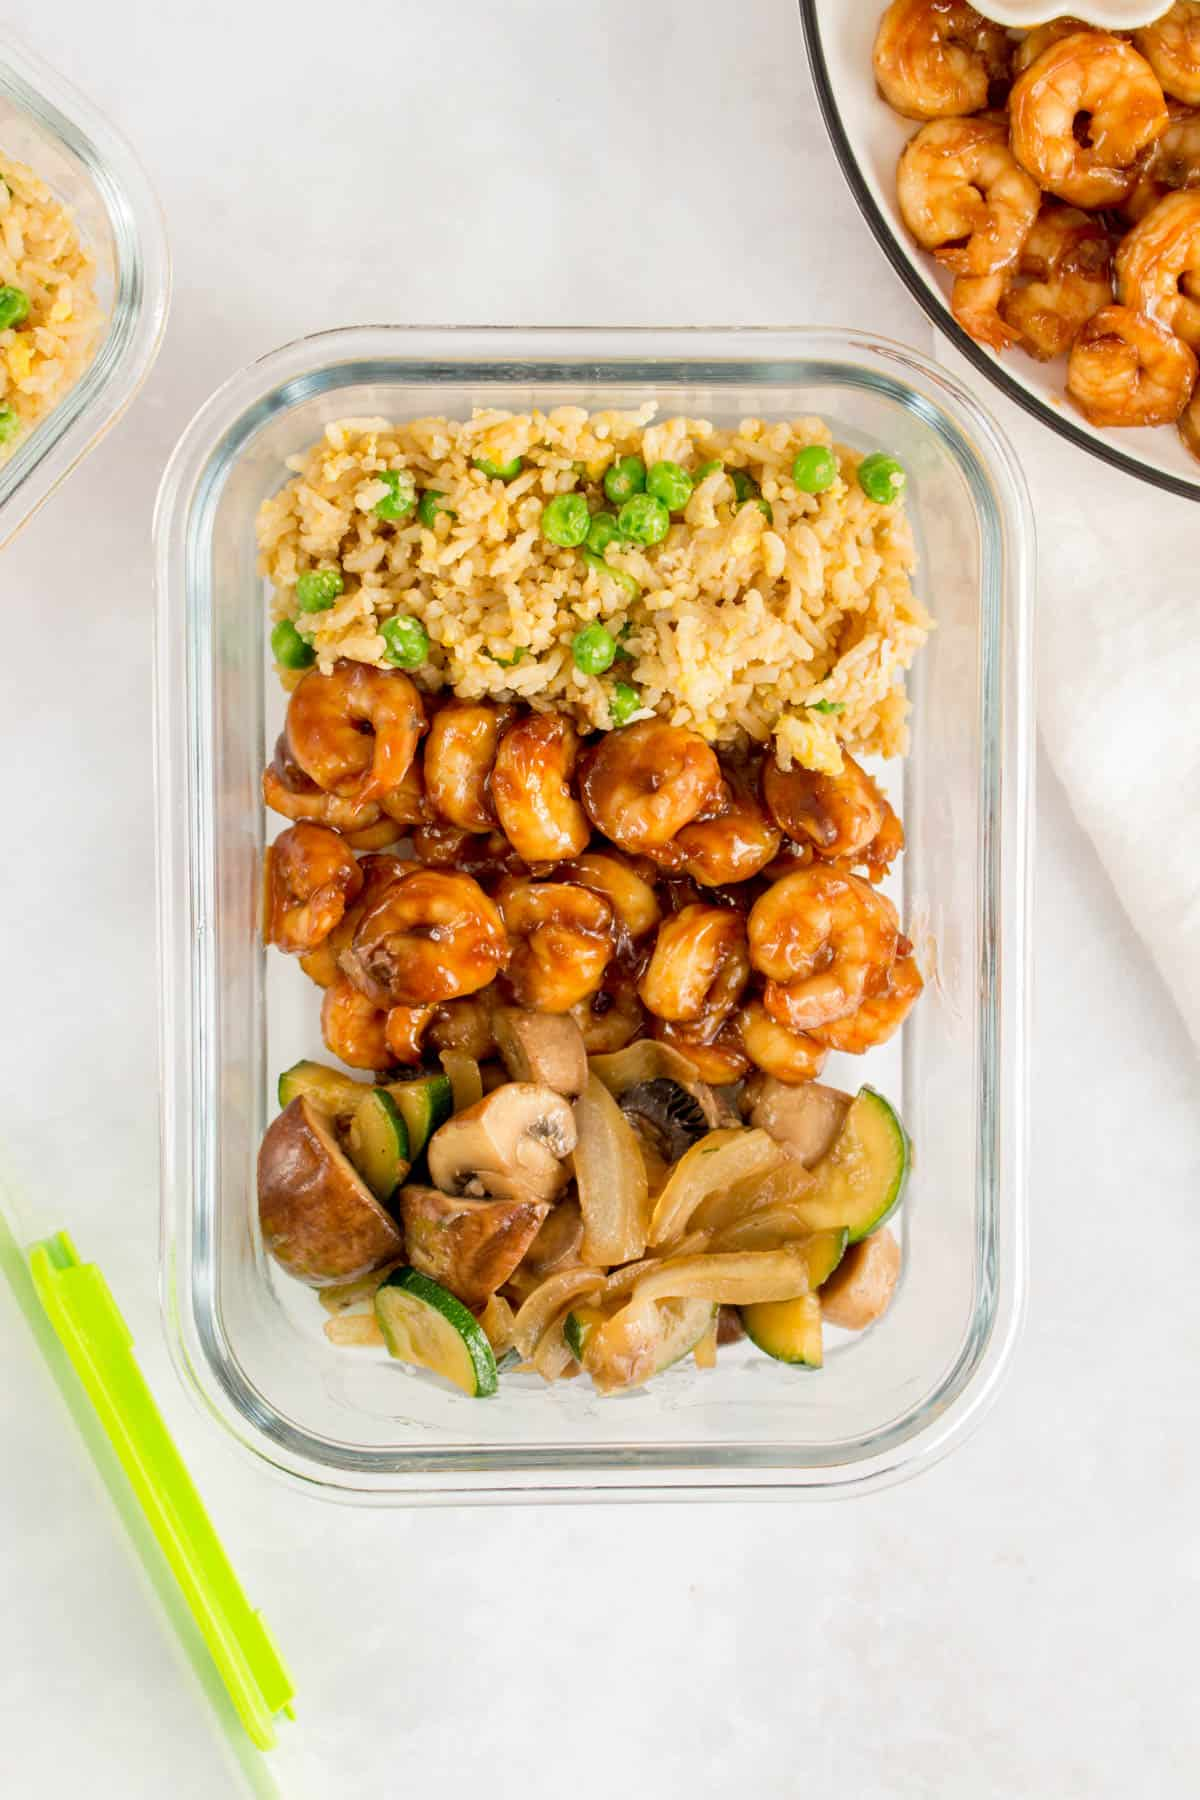 Meal prep container of hibachi shrimp with fried rice and vegetables.